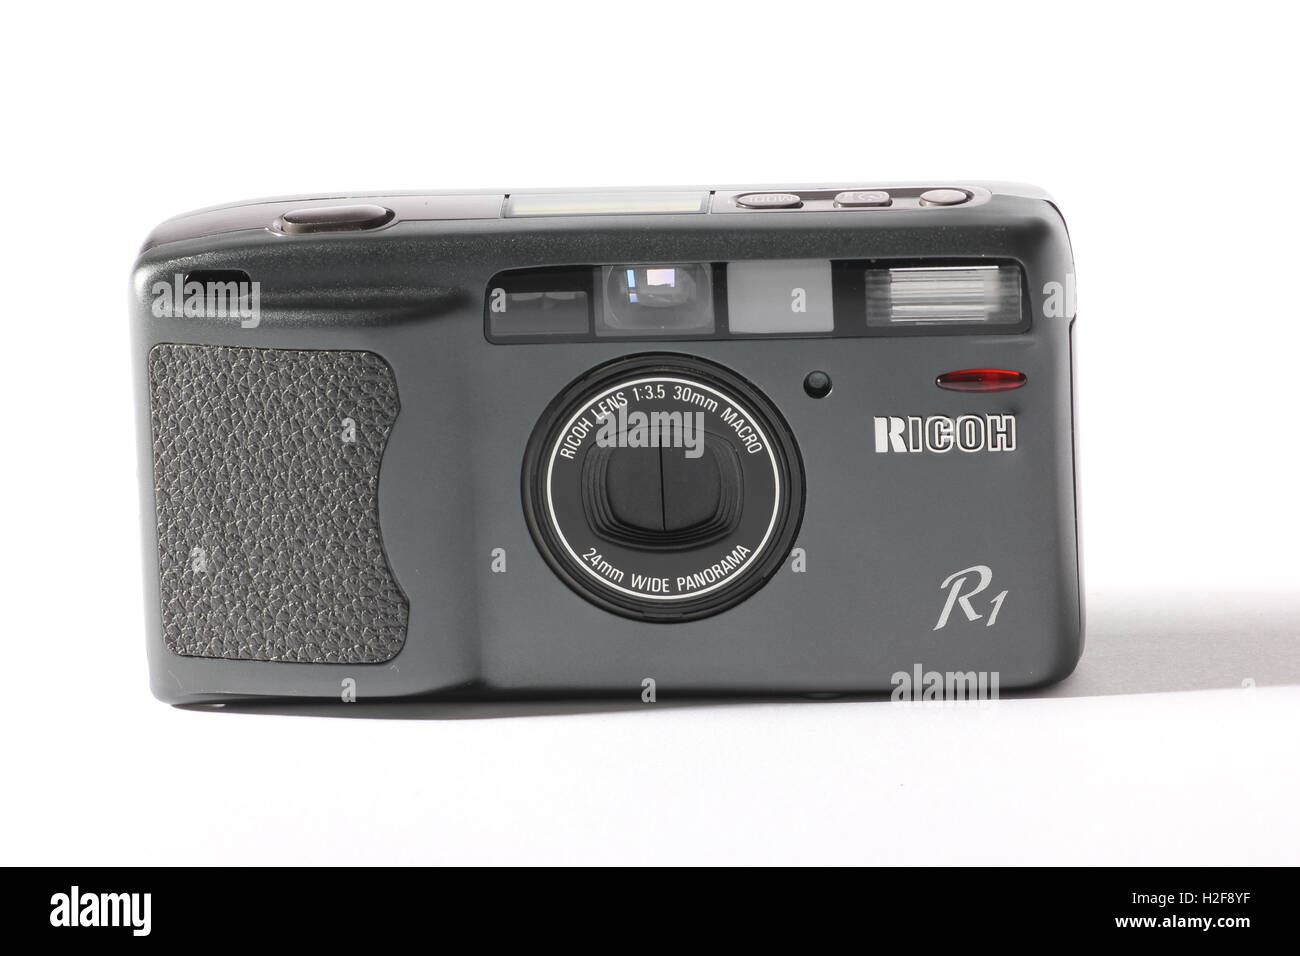 35mm Film Camera Stock Photos Images Alamy Ricoh Strap St 3 W Photographic On White Backgorund Image